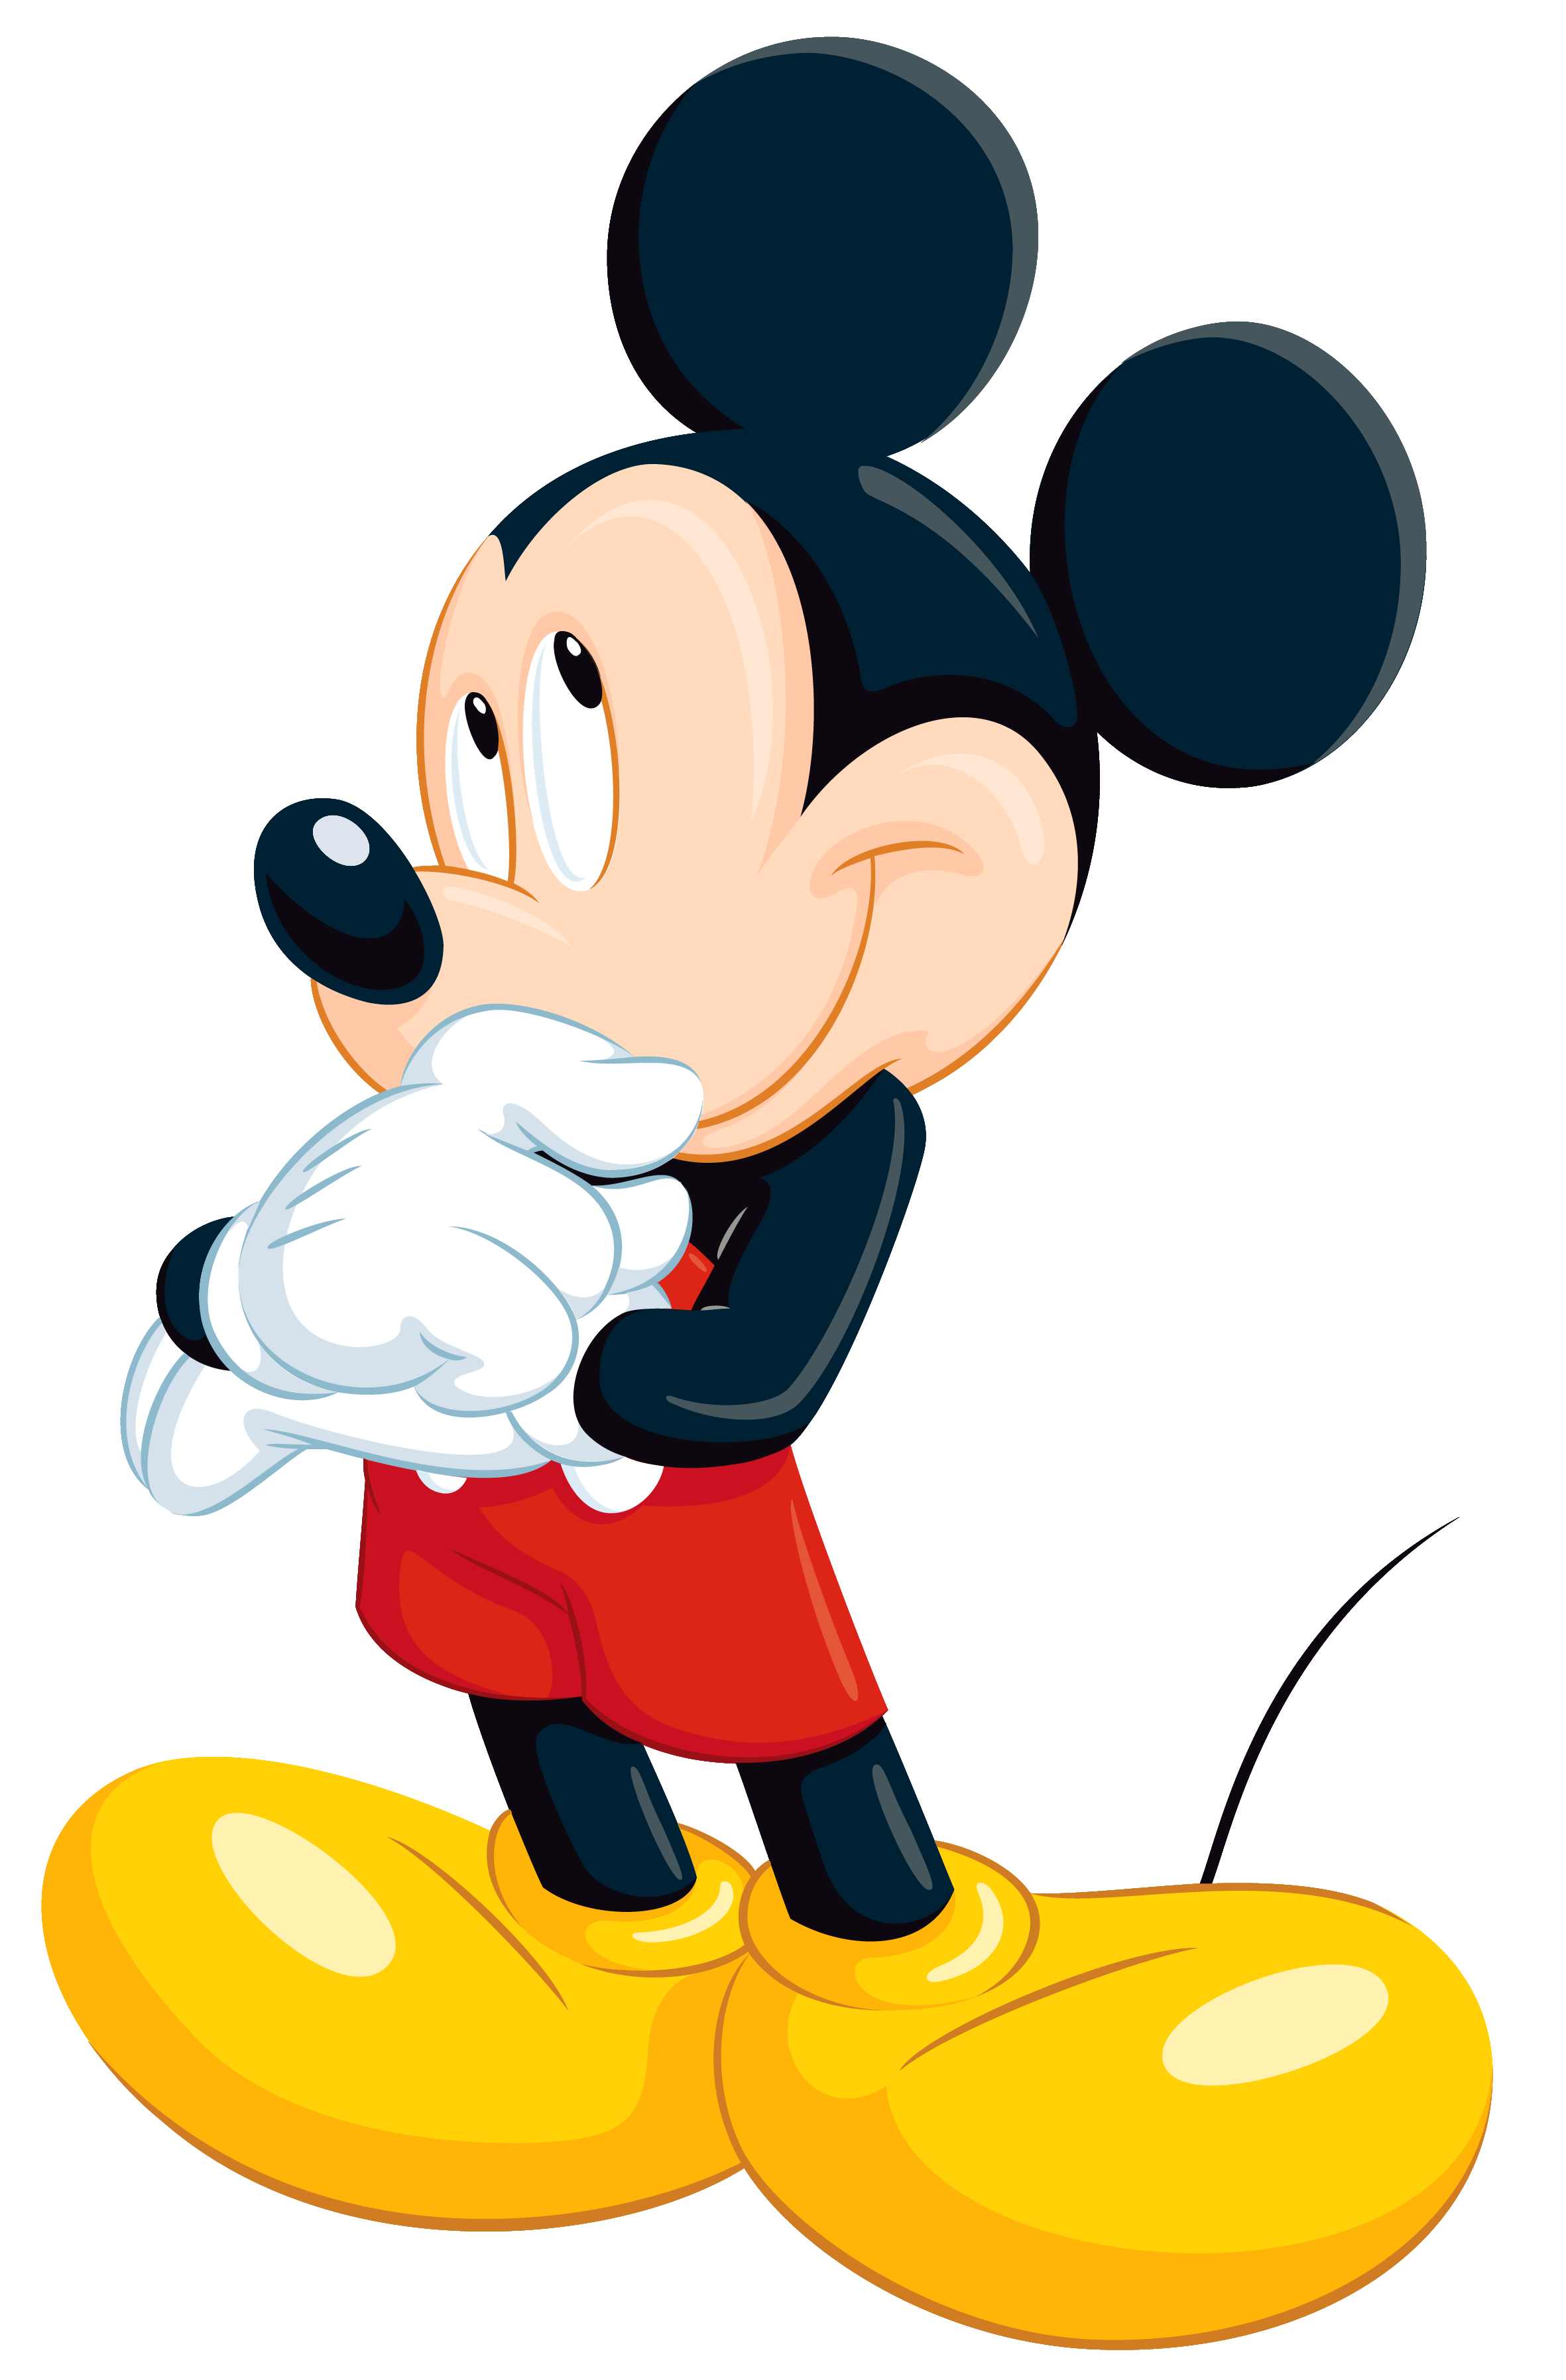 mickey mouse png images cartoon character png only #9406